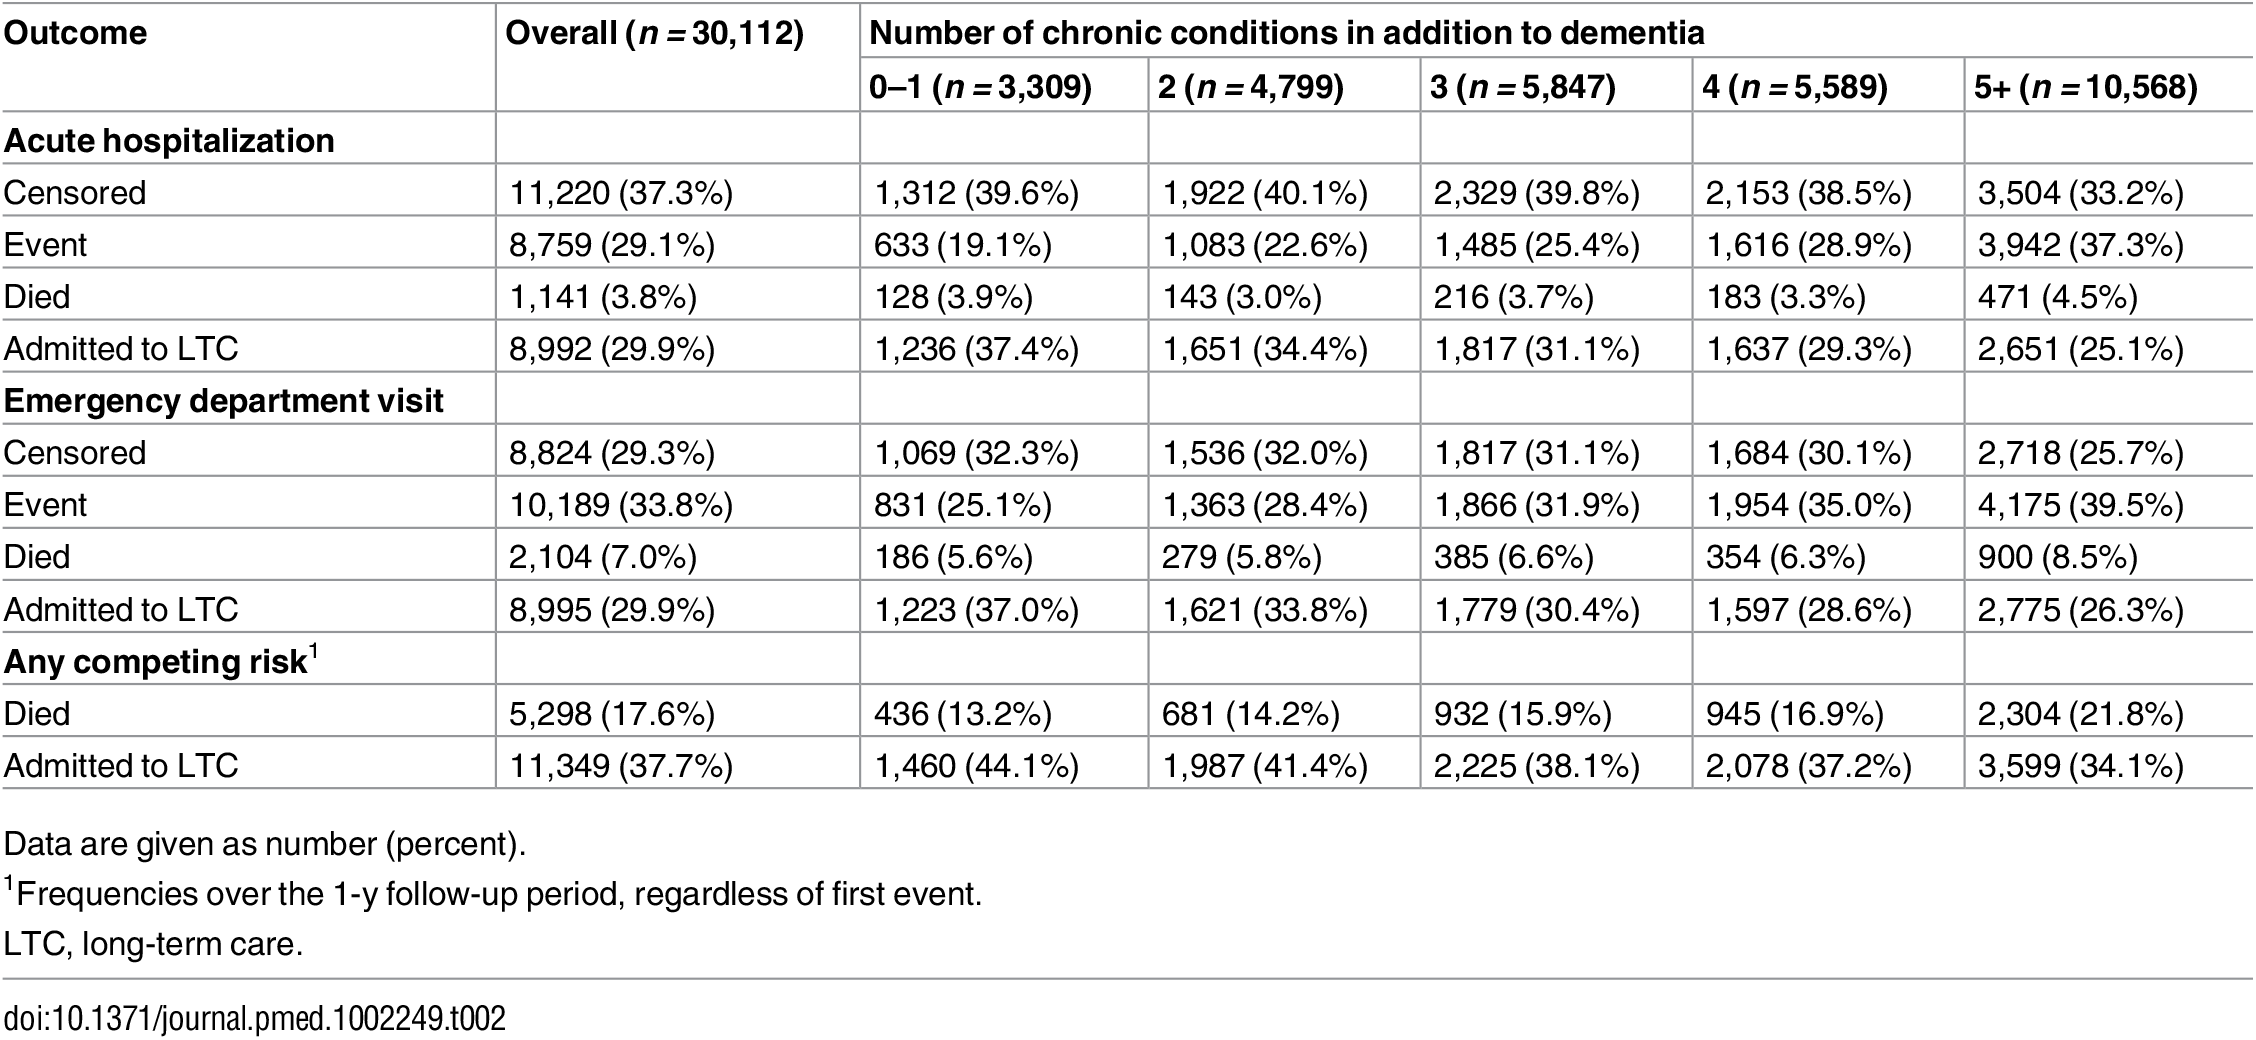 Proportion of long-stay home care clients with dementia in Ontario in 2012 who experienced each outcome (any acute hospitalization or any emergency department visit) during the 1-y follow-up period, accounting for multiple competing risks (death, long-term care admission, censoring at end of follow-up).